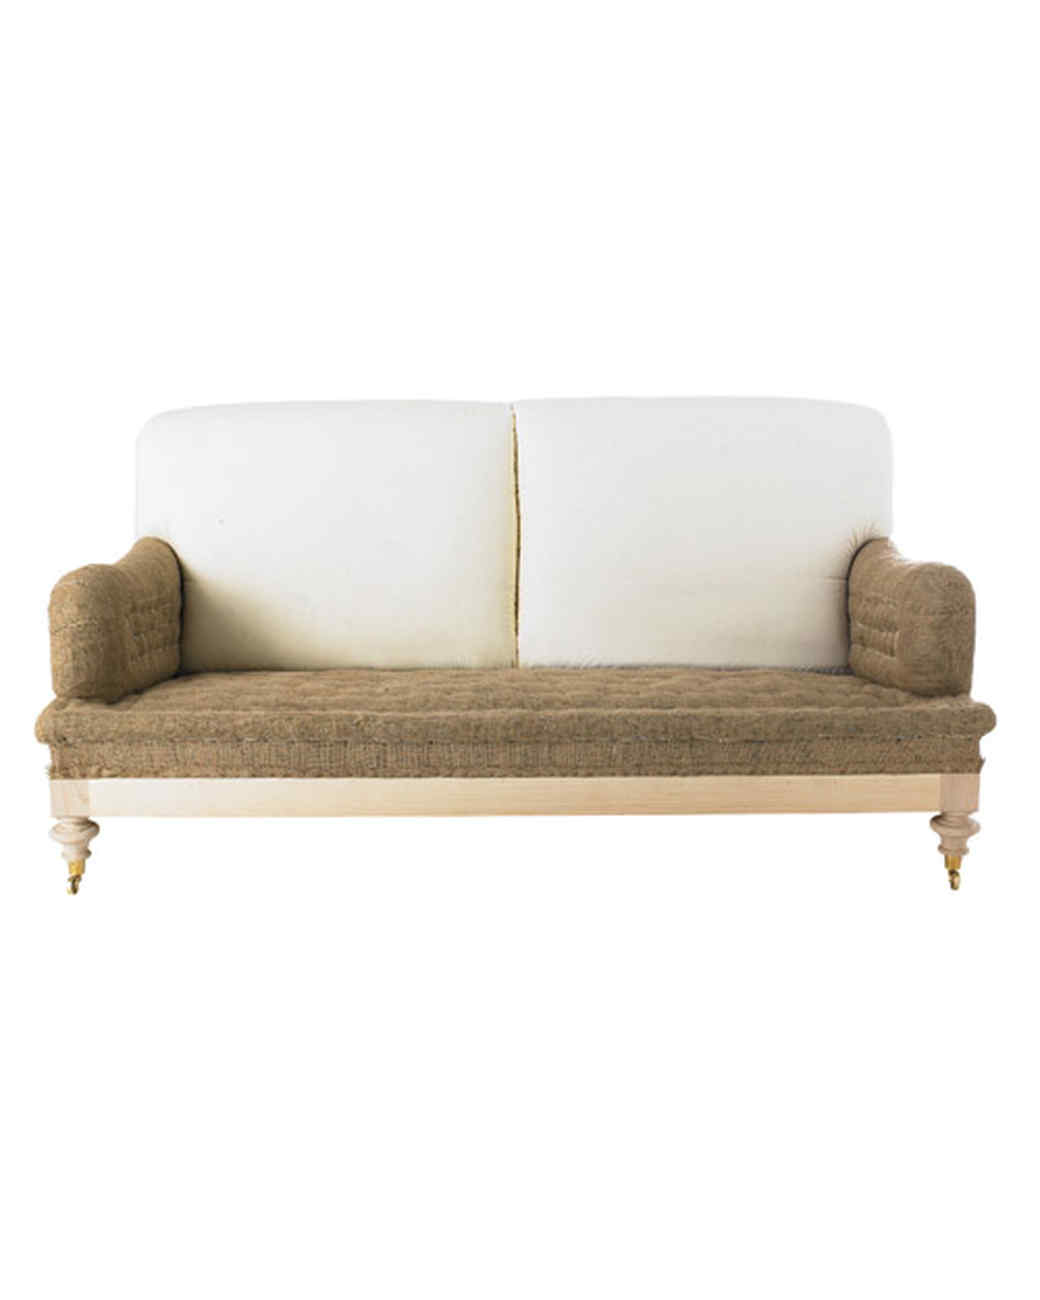 feather filled sofas second hand 4 seater leather sofa ebay 13 steps to a stunning makeover martha stewart